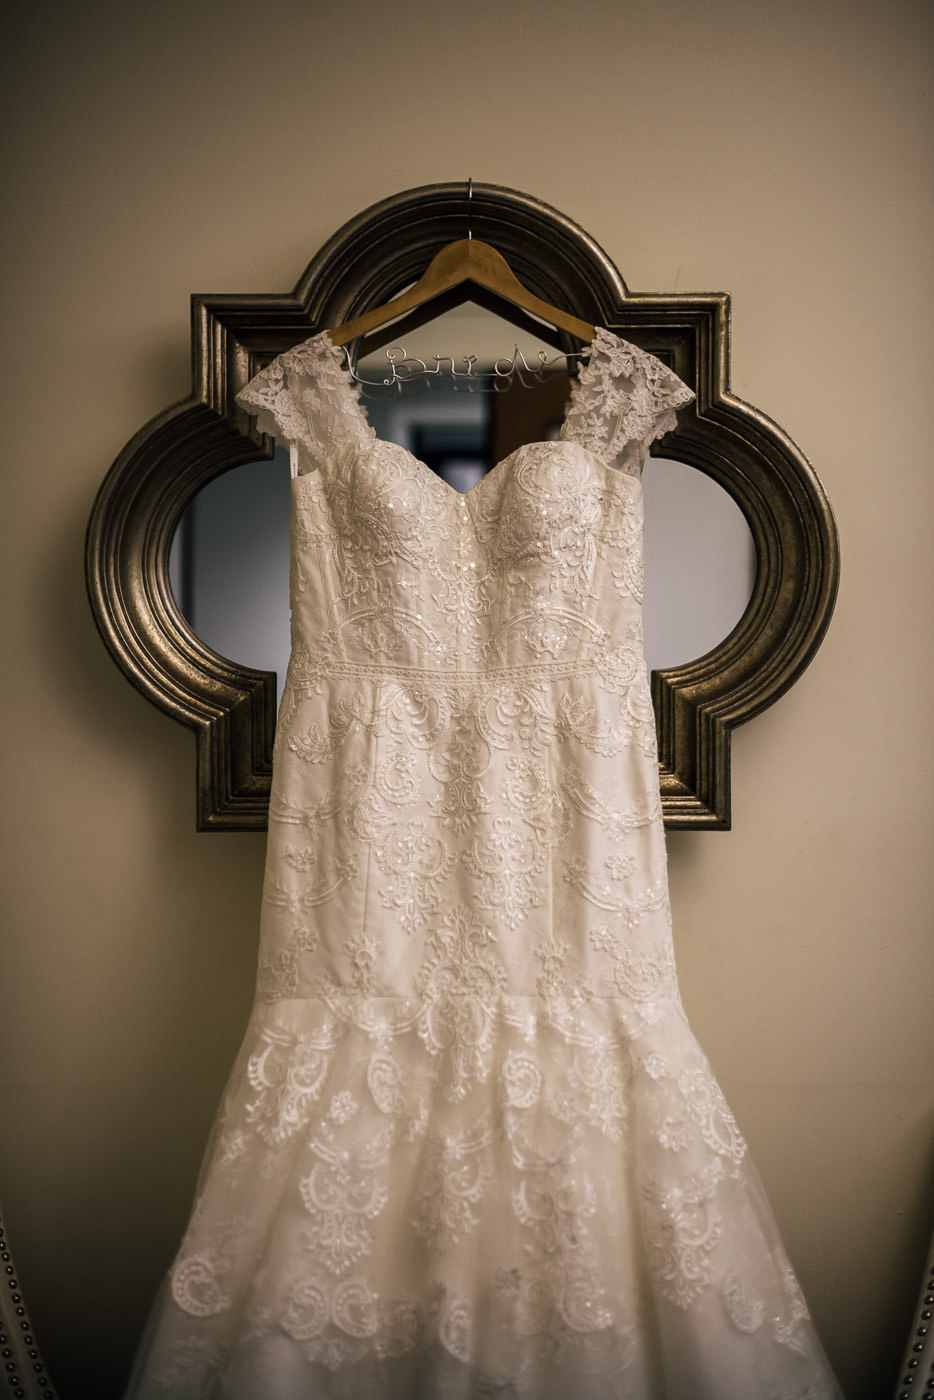 Beautiful wedding dress hung from a mirror at Knollwod Country Club.